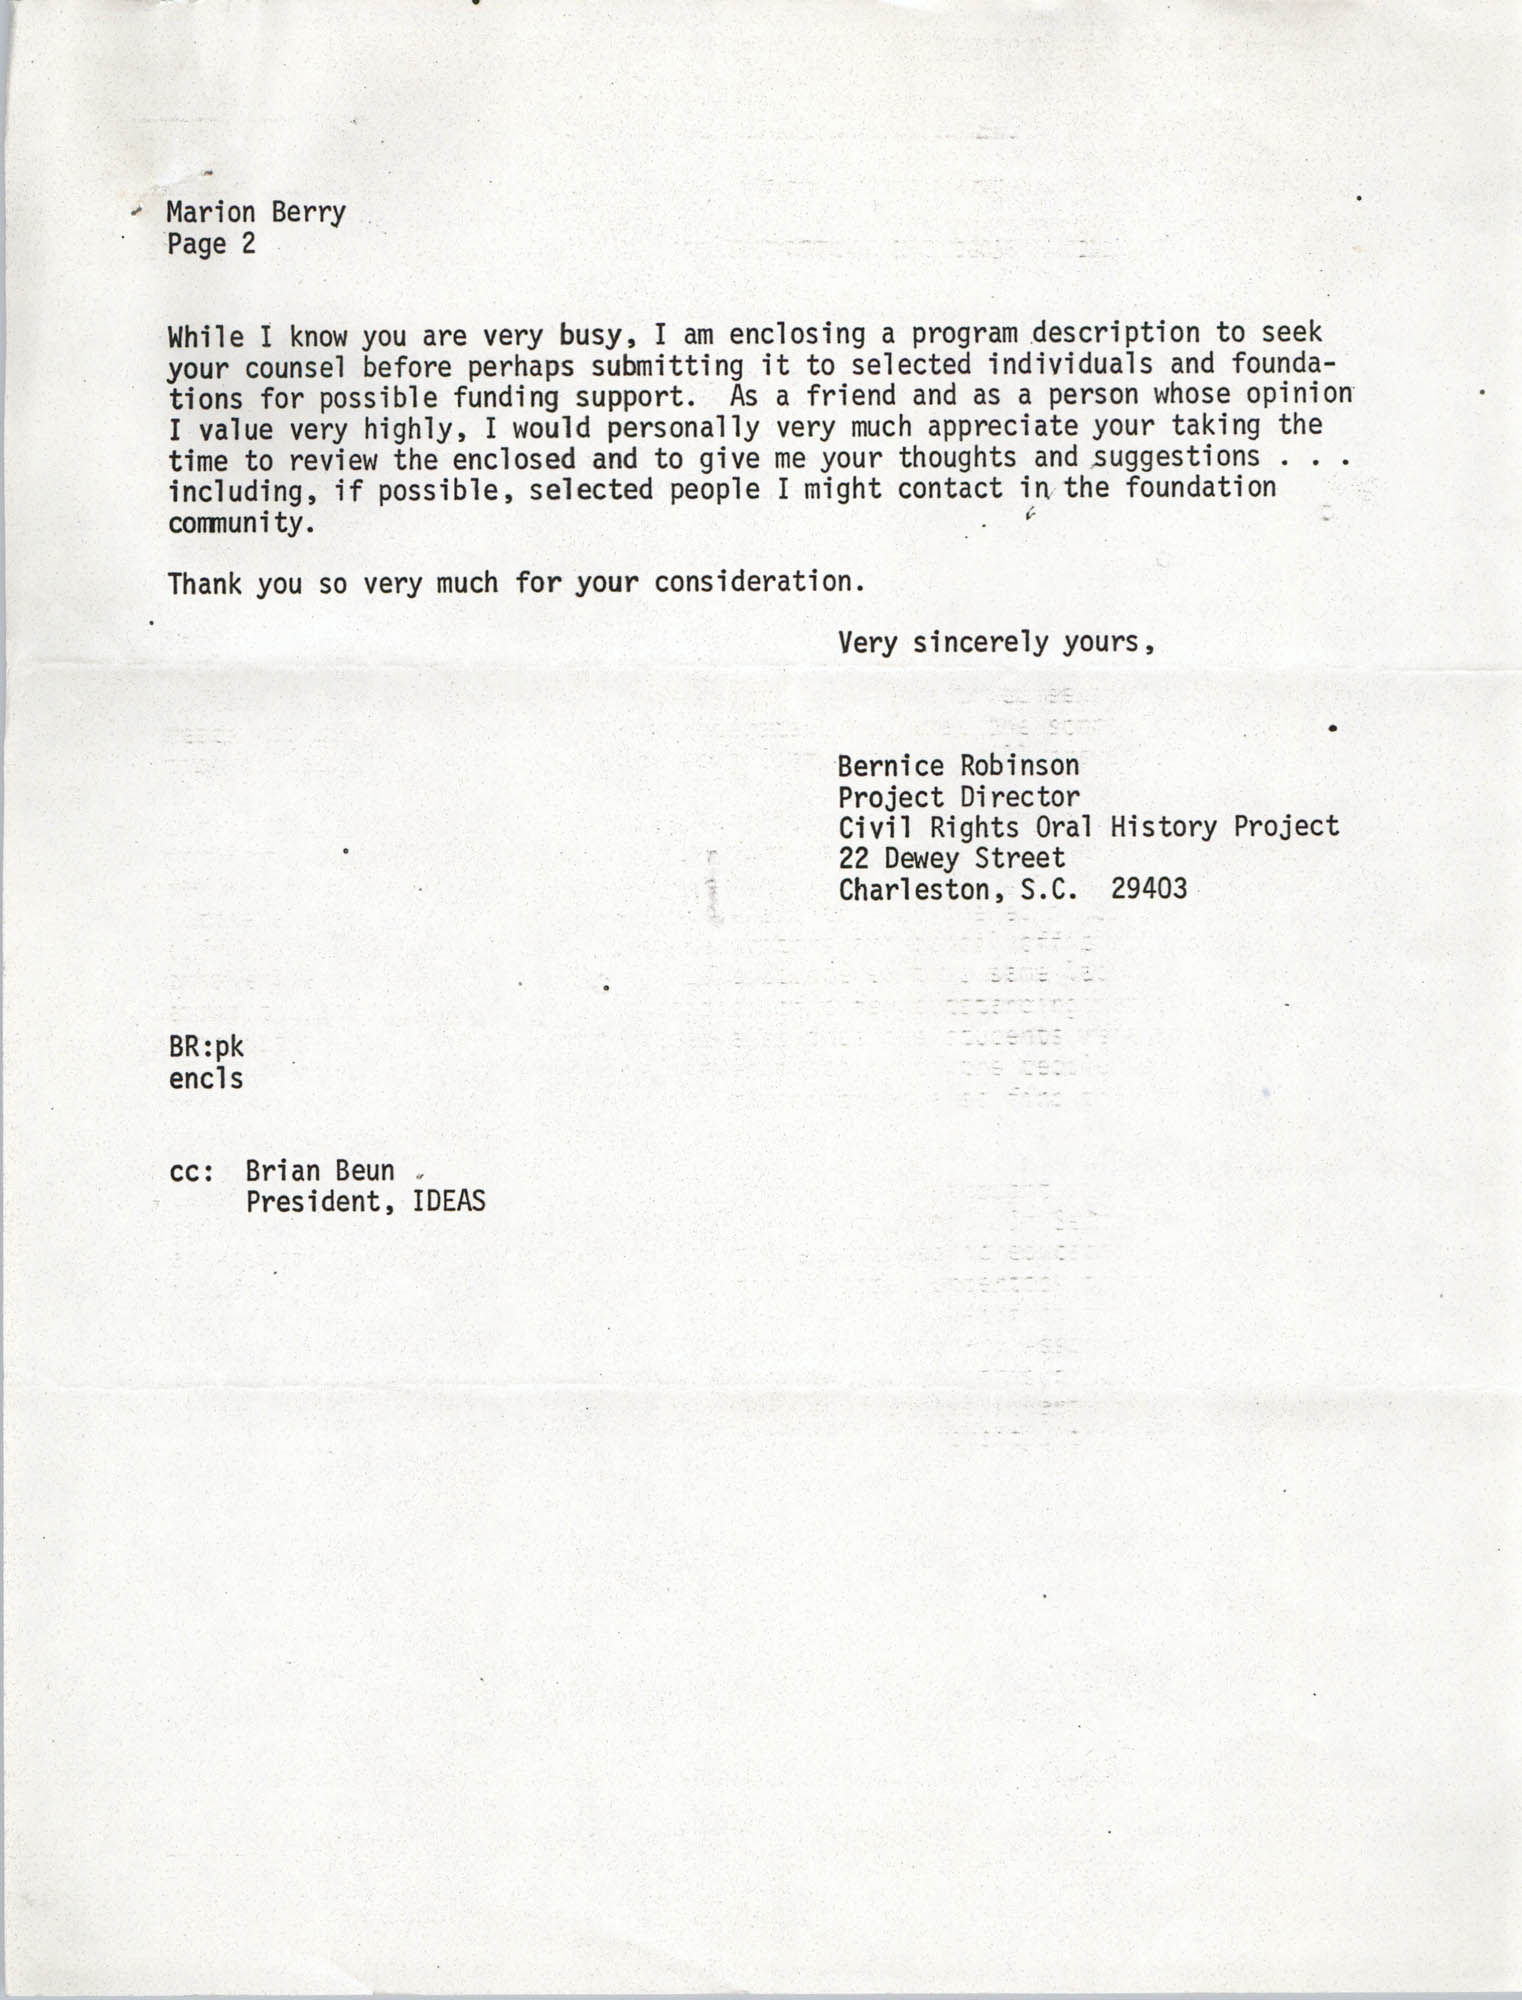 Letter from Bernice Robinson to Marian Berry, May 7, 1973, Page 2